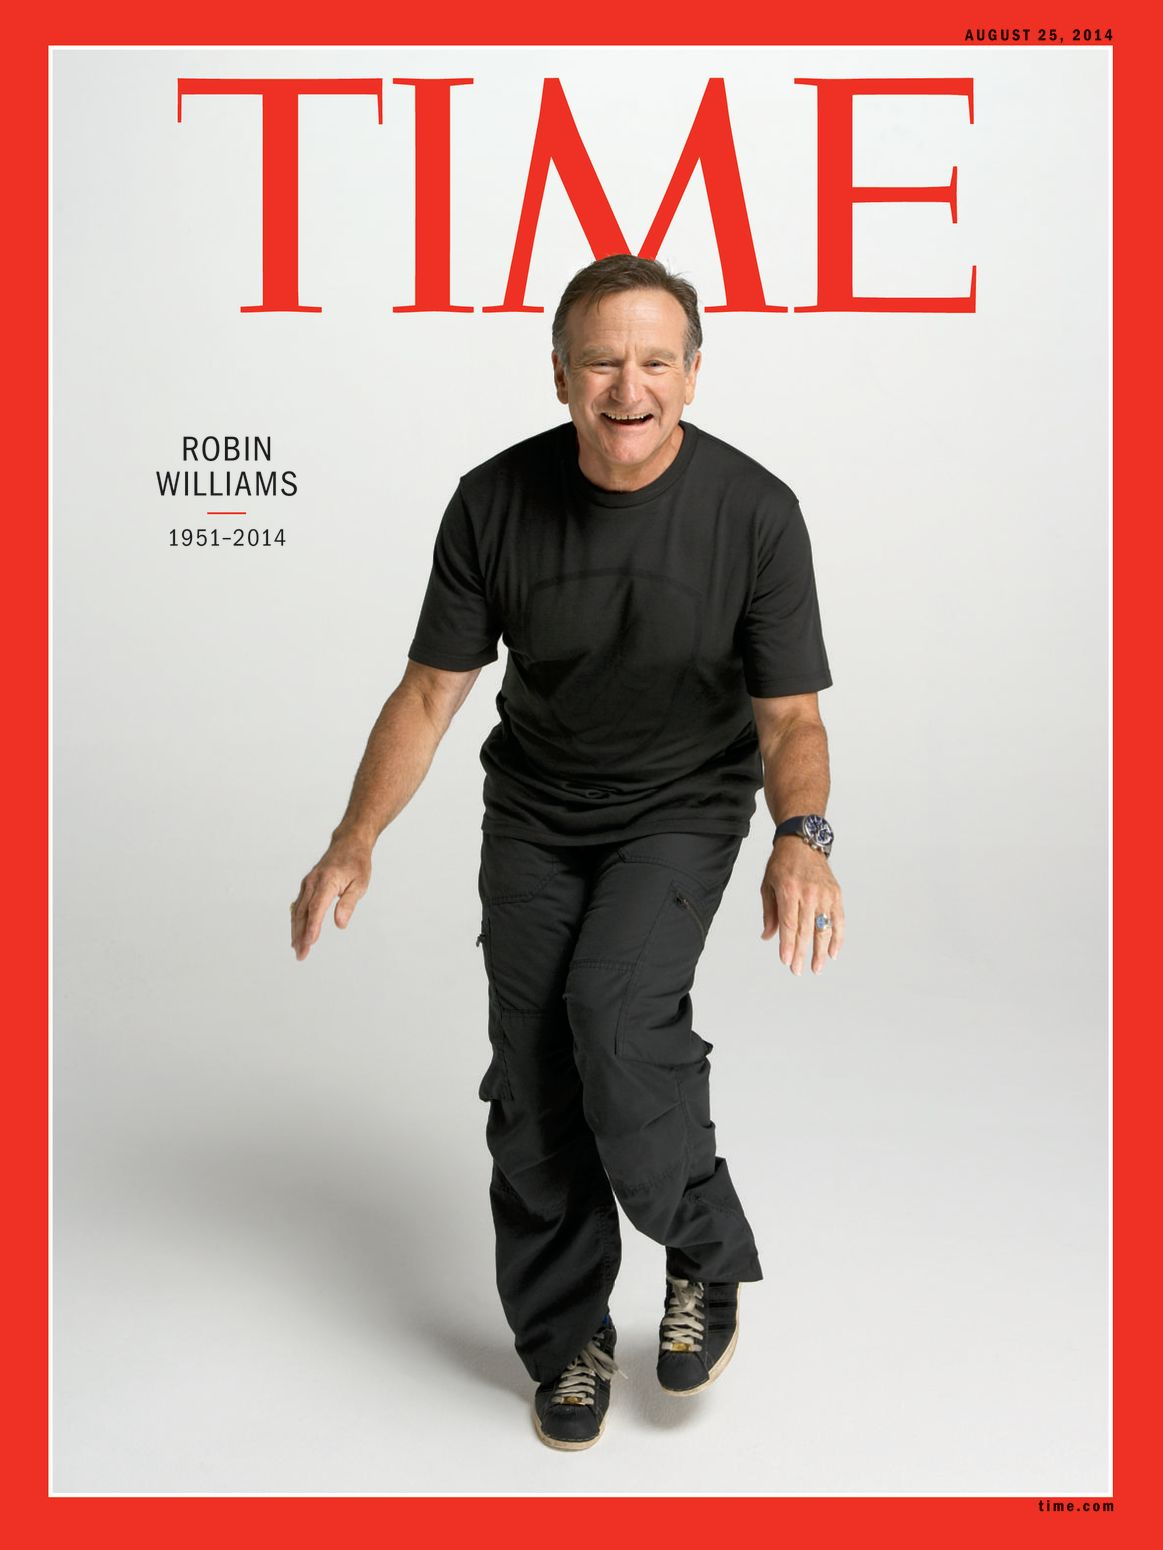 The Aug. 25, 2014, cover of TIME